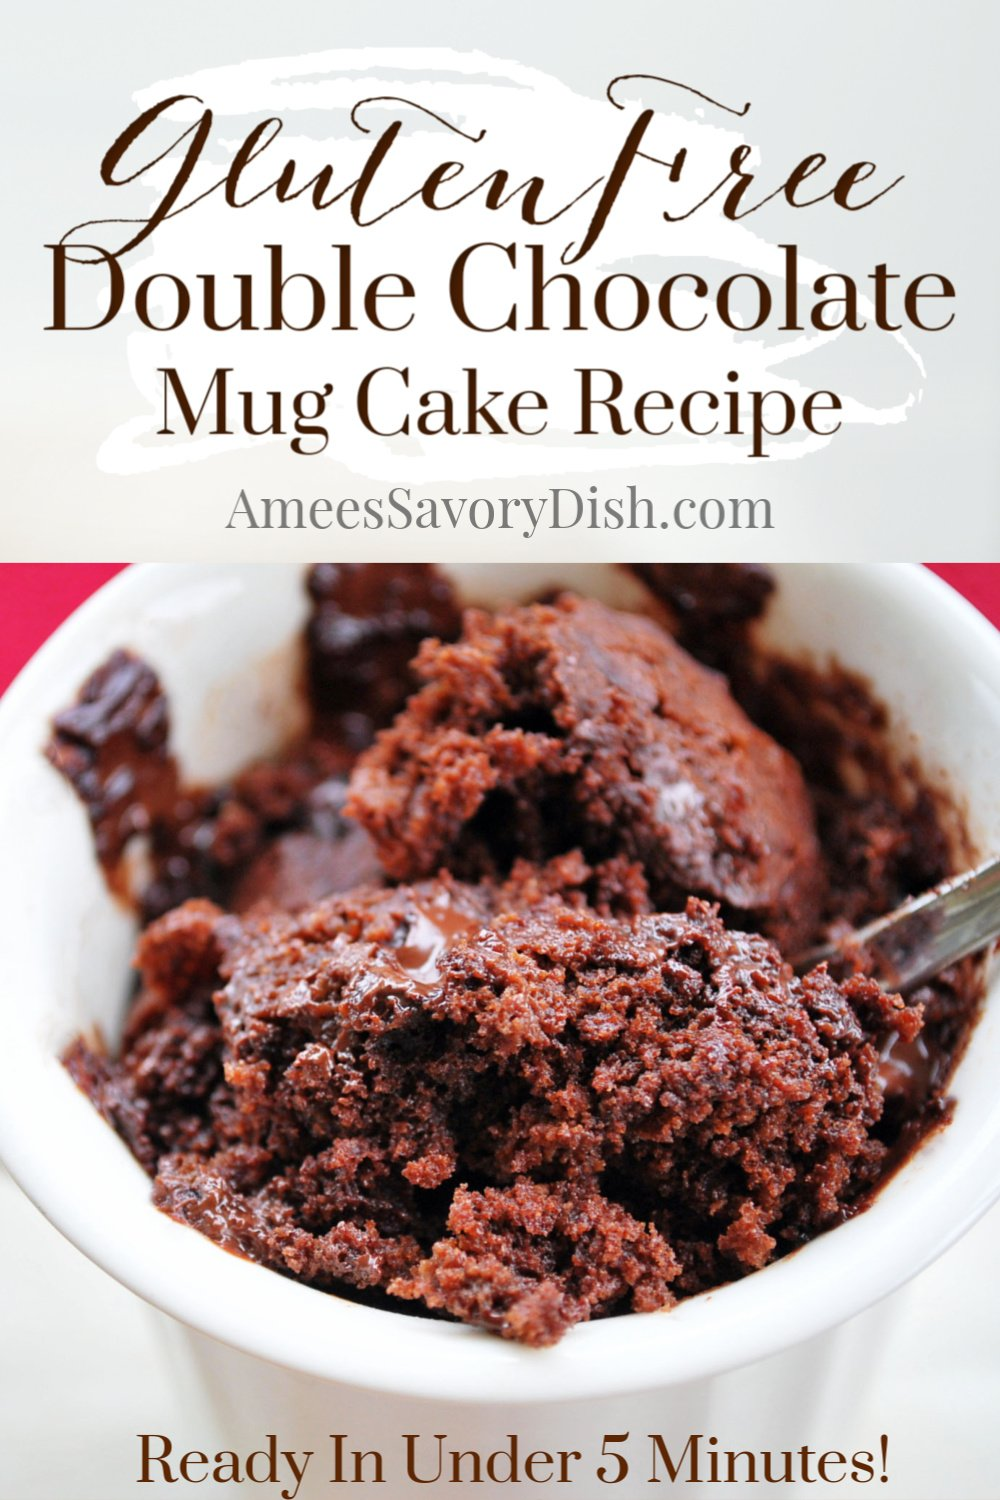 Double chocolate gluten-free mug cake is a quick and easy microwaveable dessert. This simple mug cake recipe is a decadent dessert that comes together in less than 5 minutes! #mugcake #glutenfreemugcake #glutenfreecake #chocolatemugcake via @Ameecooks